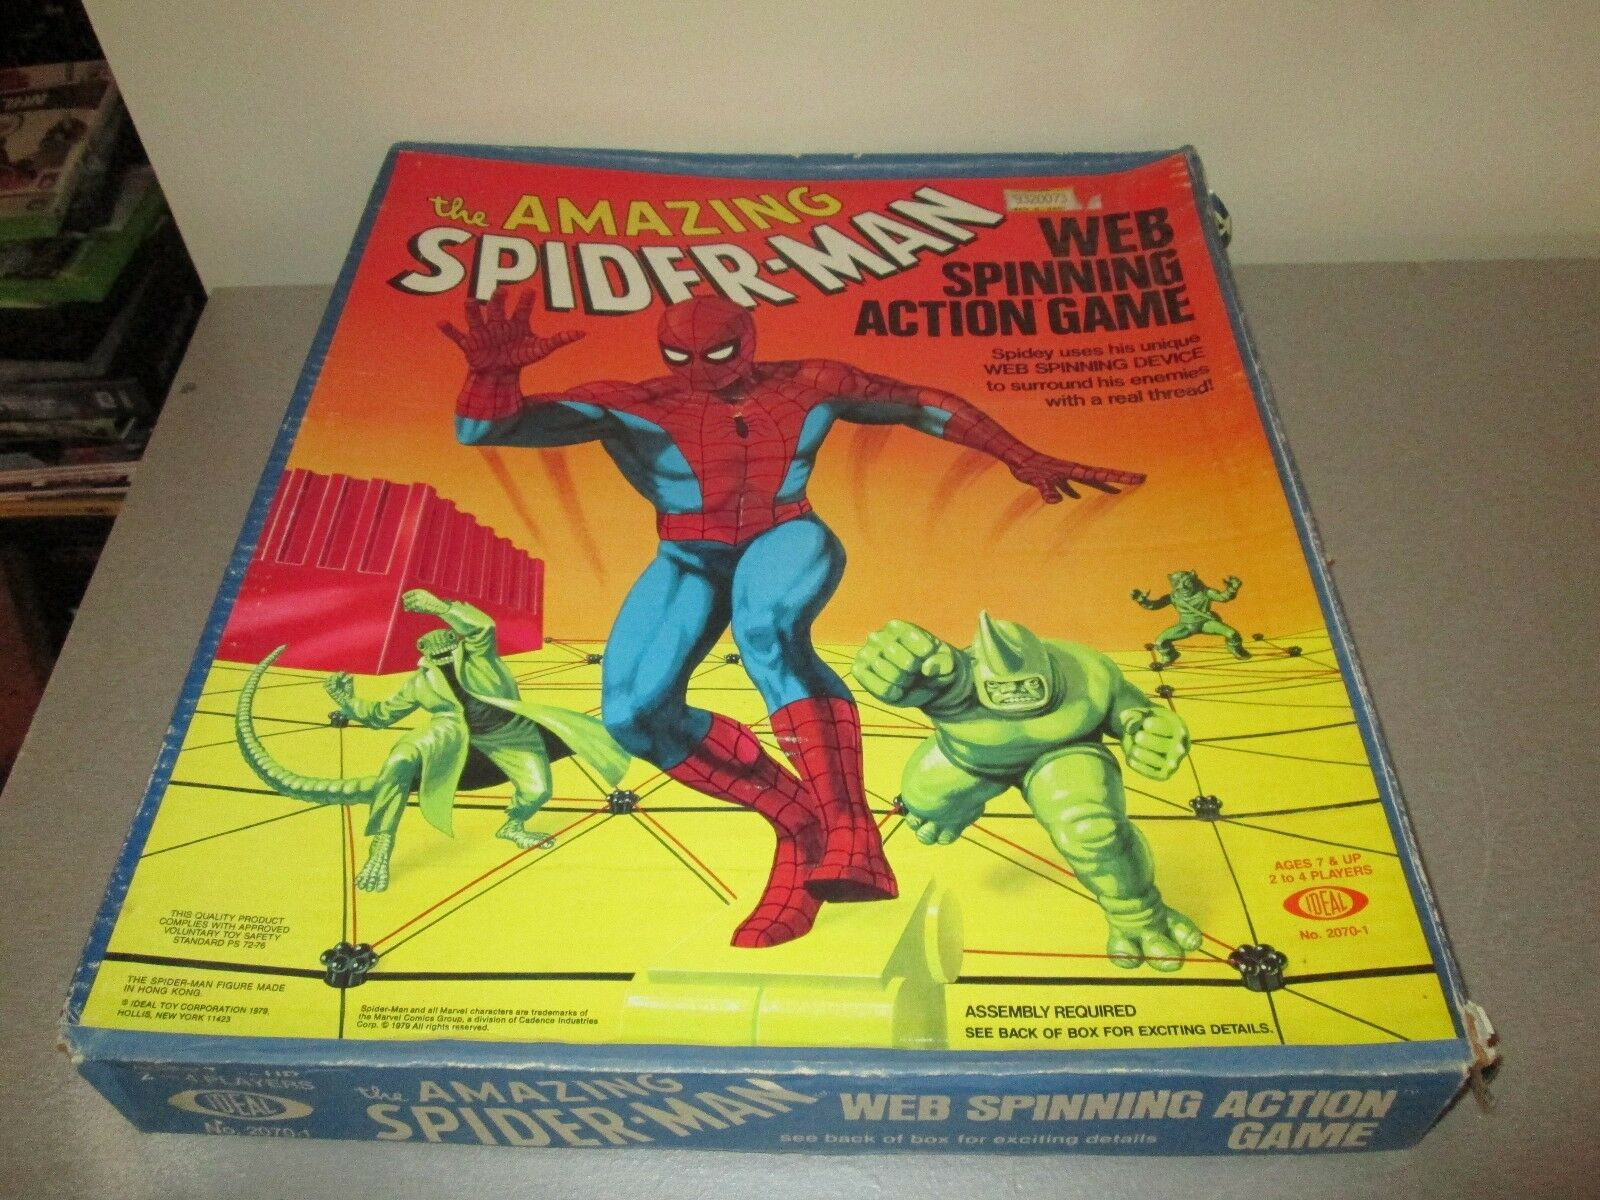 Vintage 1979 The Amazing Spiderman Web Spinning Game Complete in Box